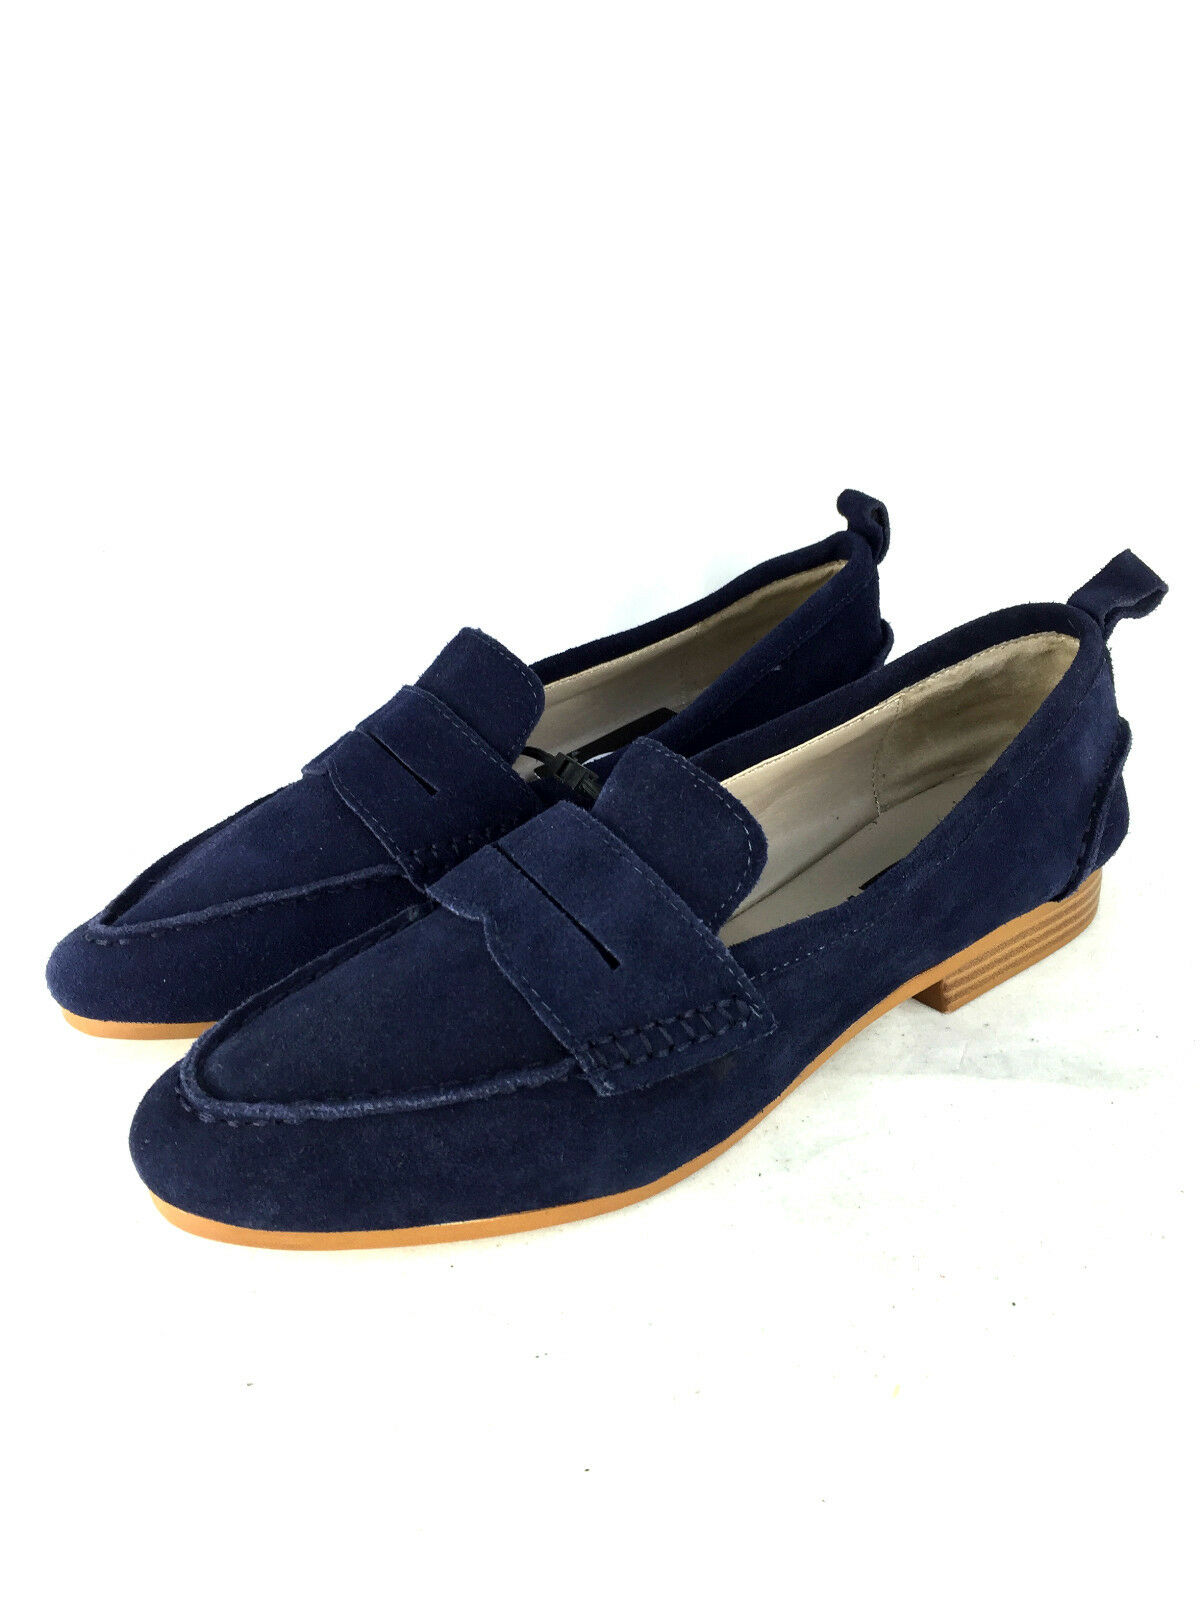 ZARA Blau LEATHER MOCCASIN Schuhe LOAFERS FLATS SIZE UK8 EUR41 US10